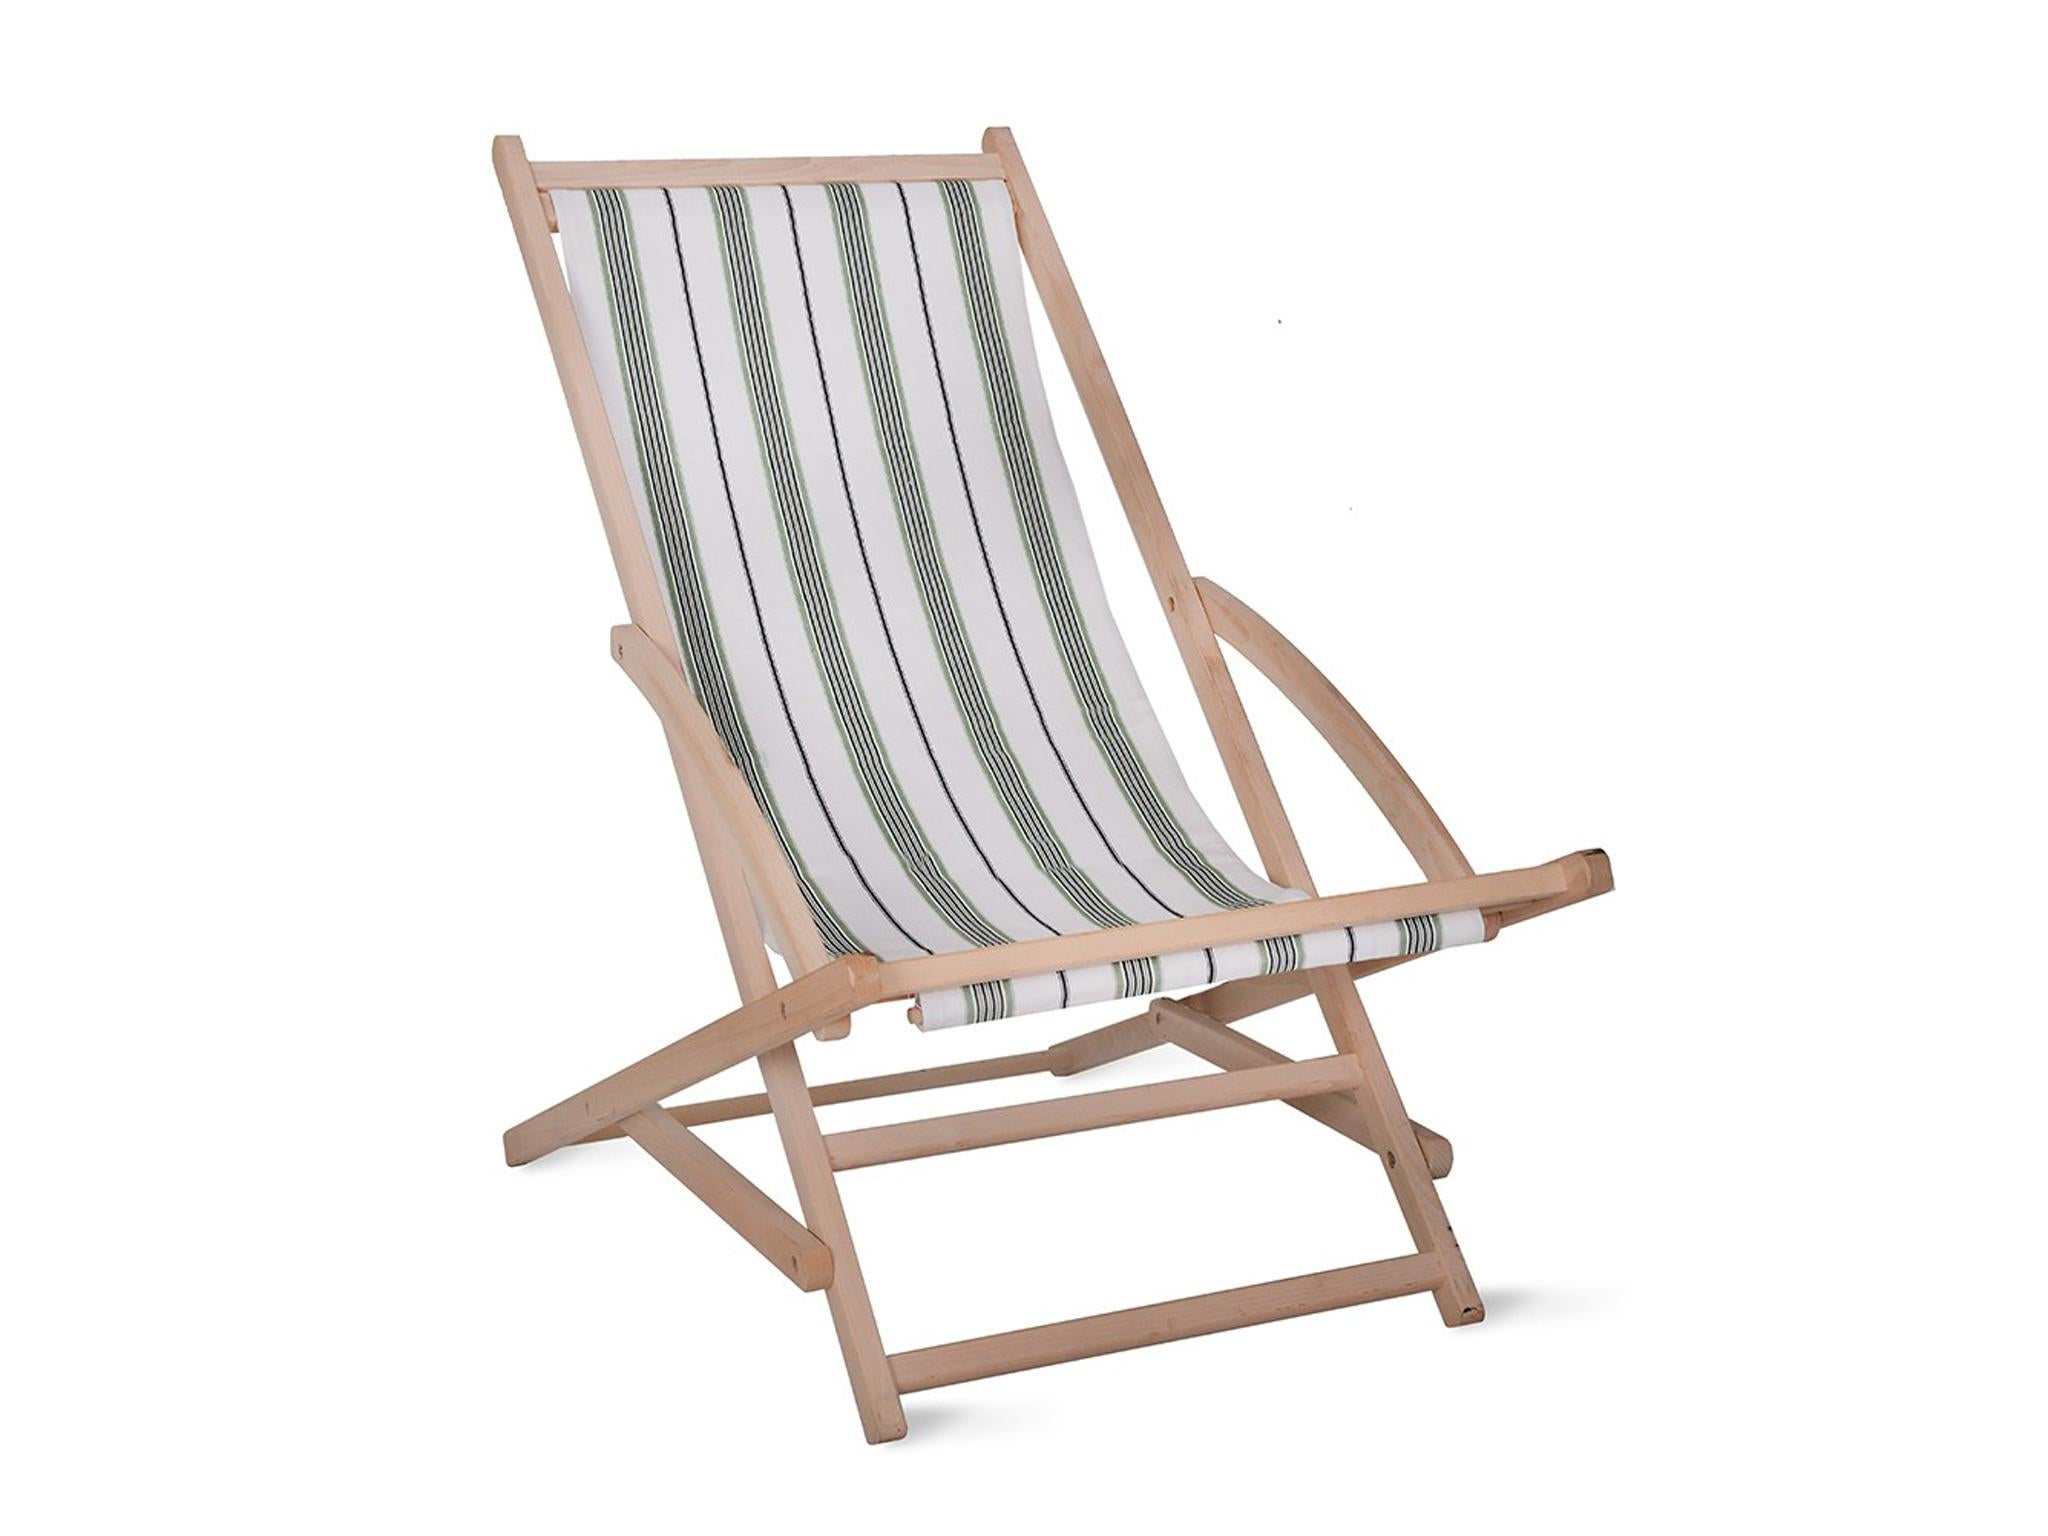 Enjoyable 10 Best Deck Chairs The Independent Beatyapartments Chair Design Images Beatyapartmentscom